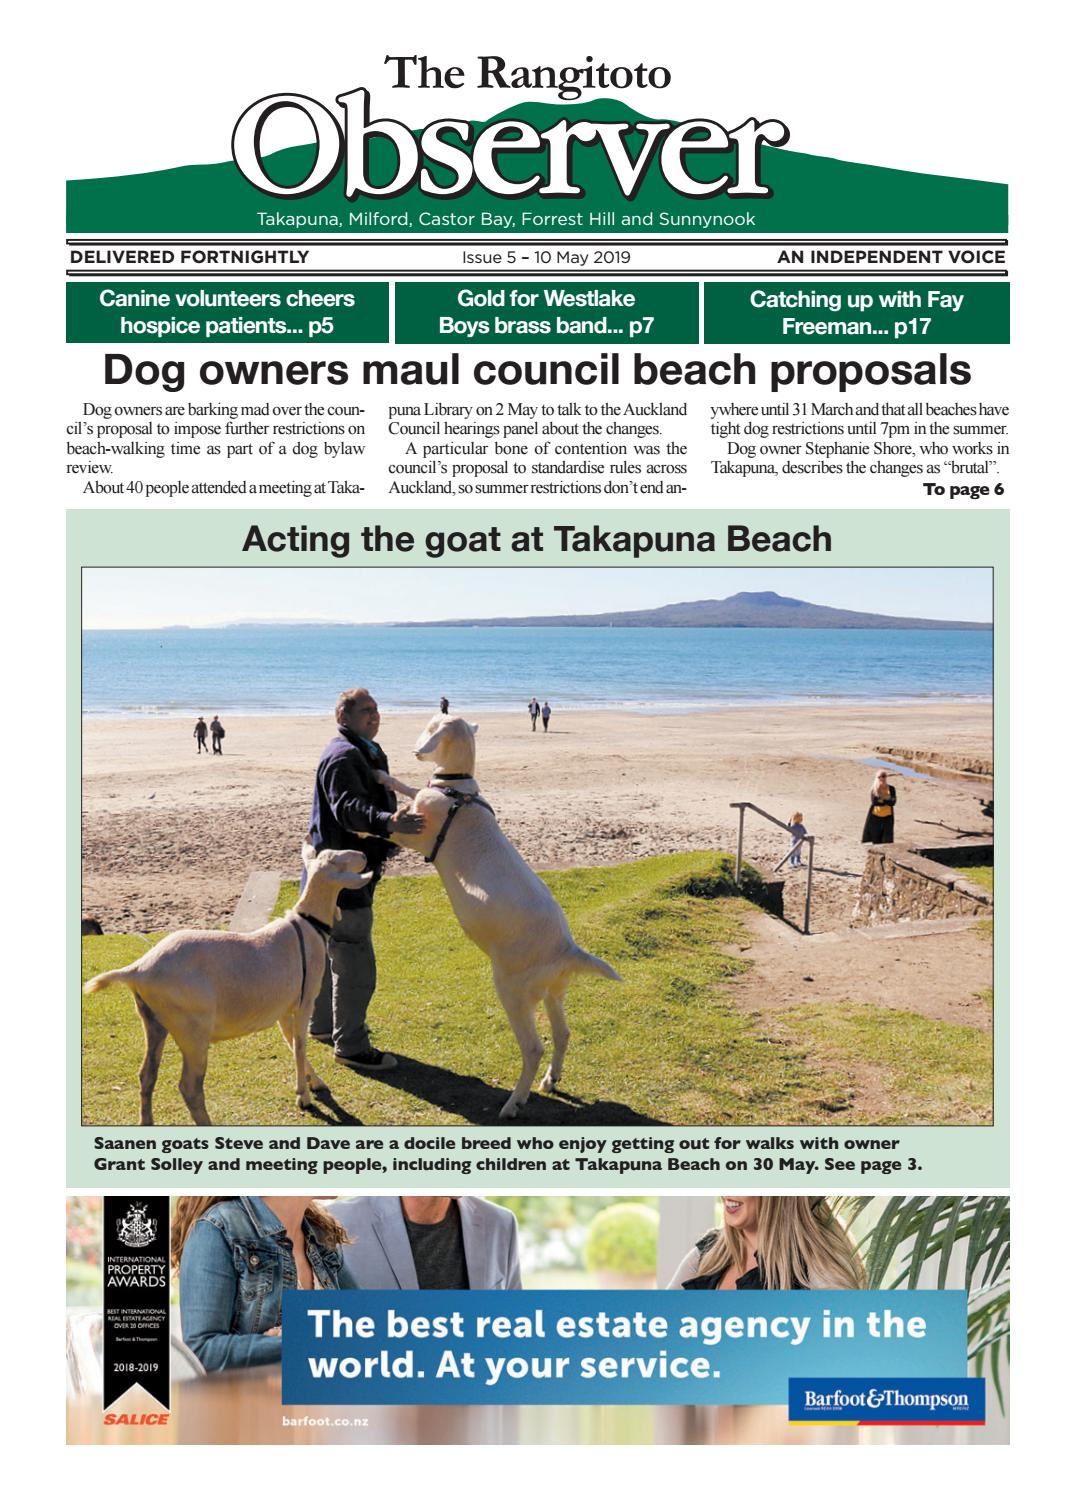 10 May 2019 Rangitoto Observer by Devonport Flagstaff - issuu